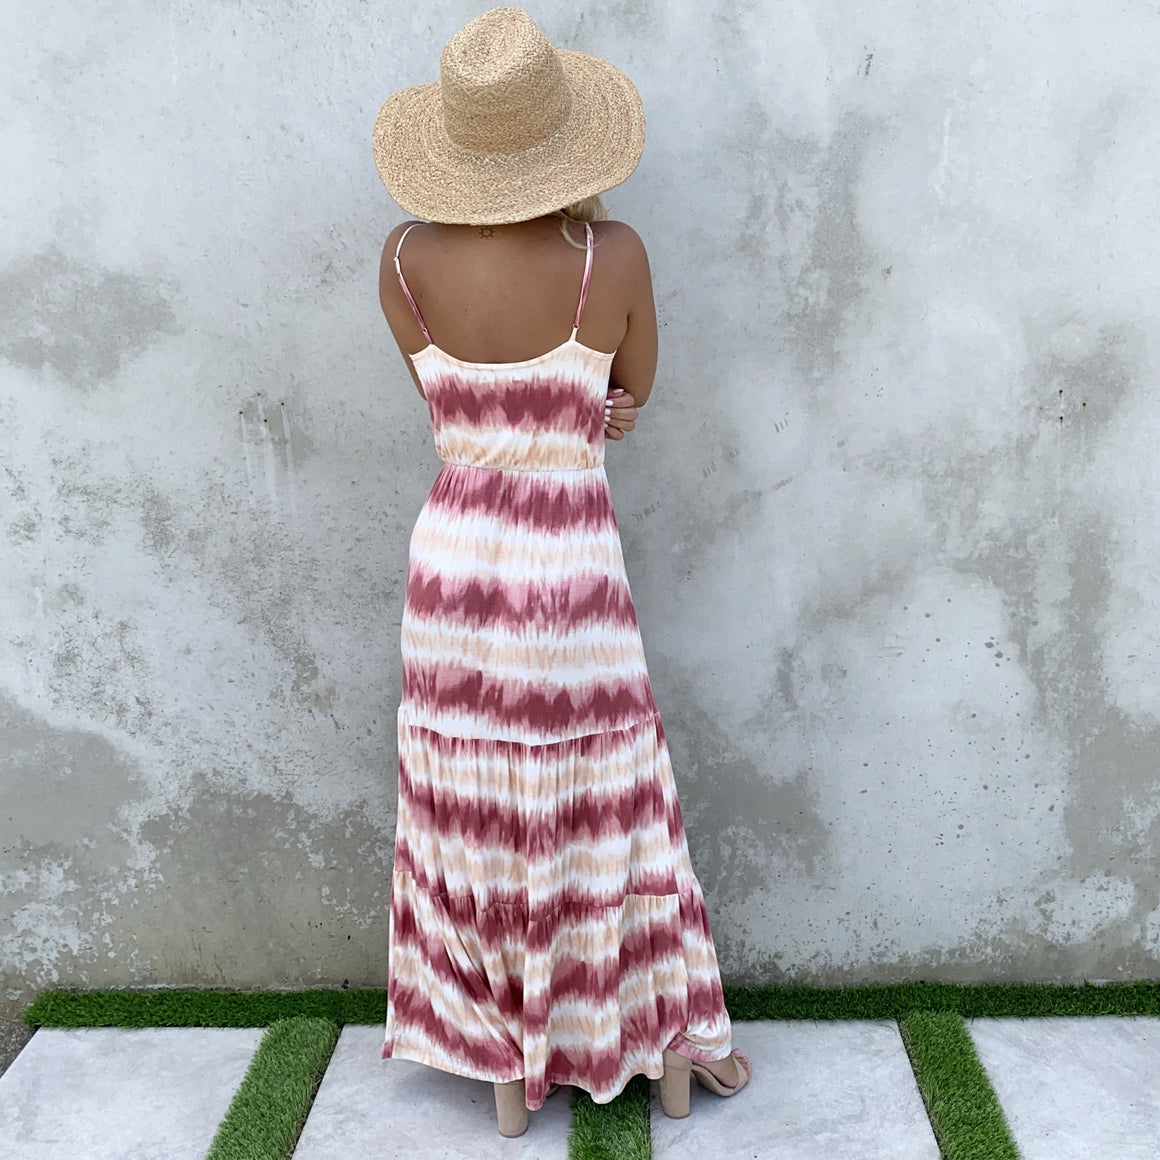 Beach Calling Tie Dye Maxi Dress - Dainty Hooligan